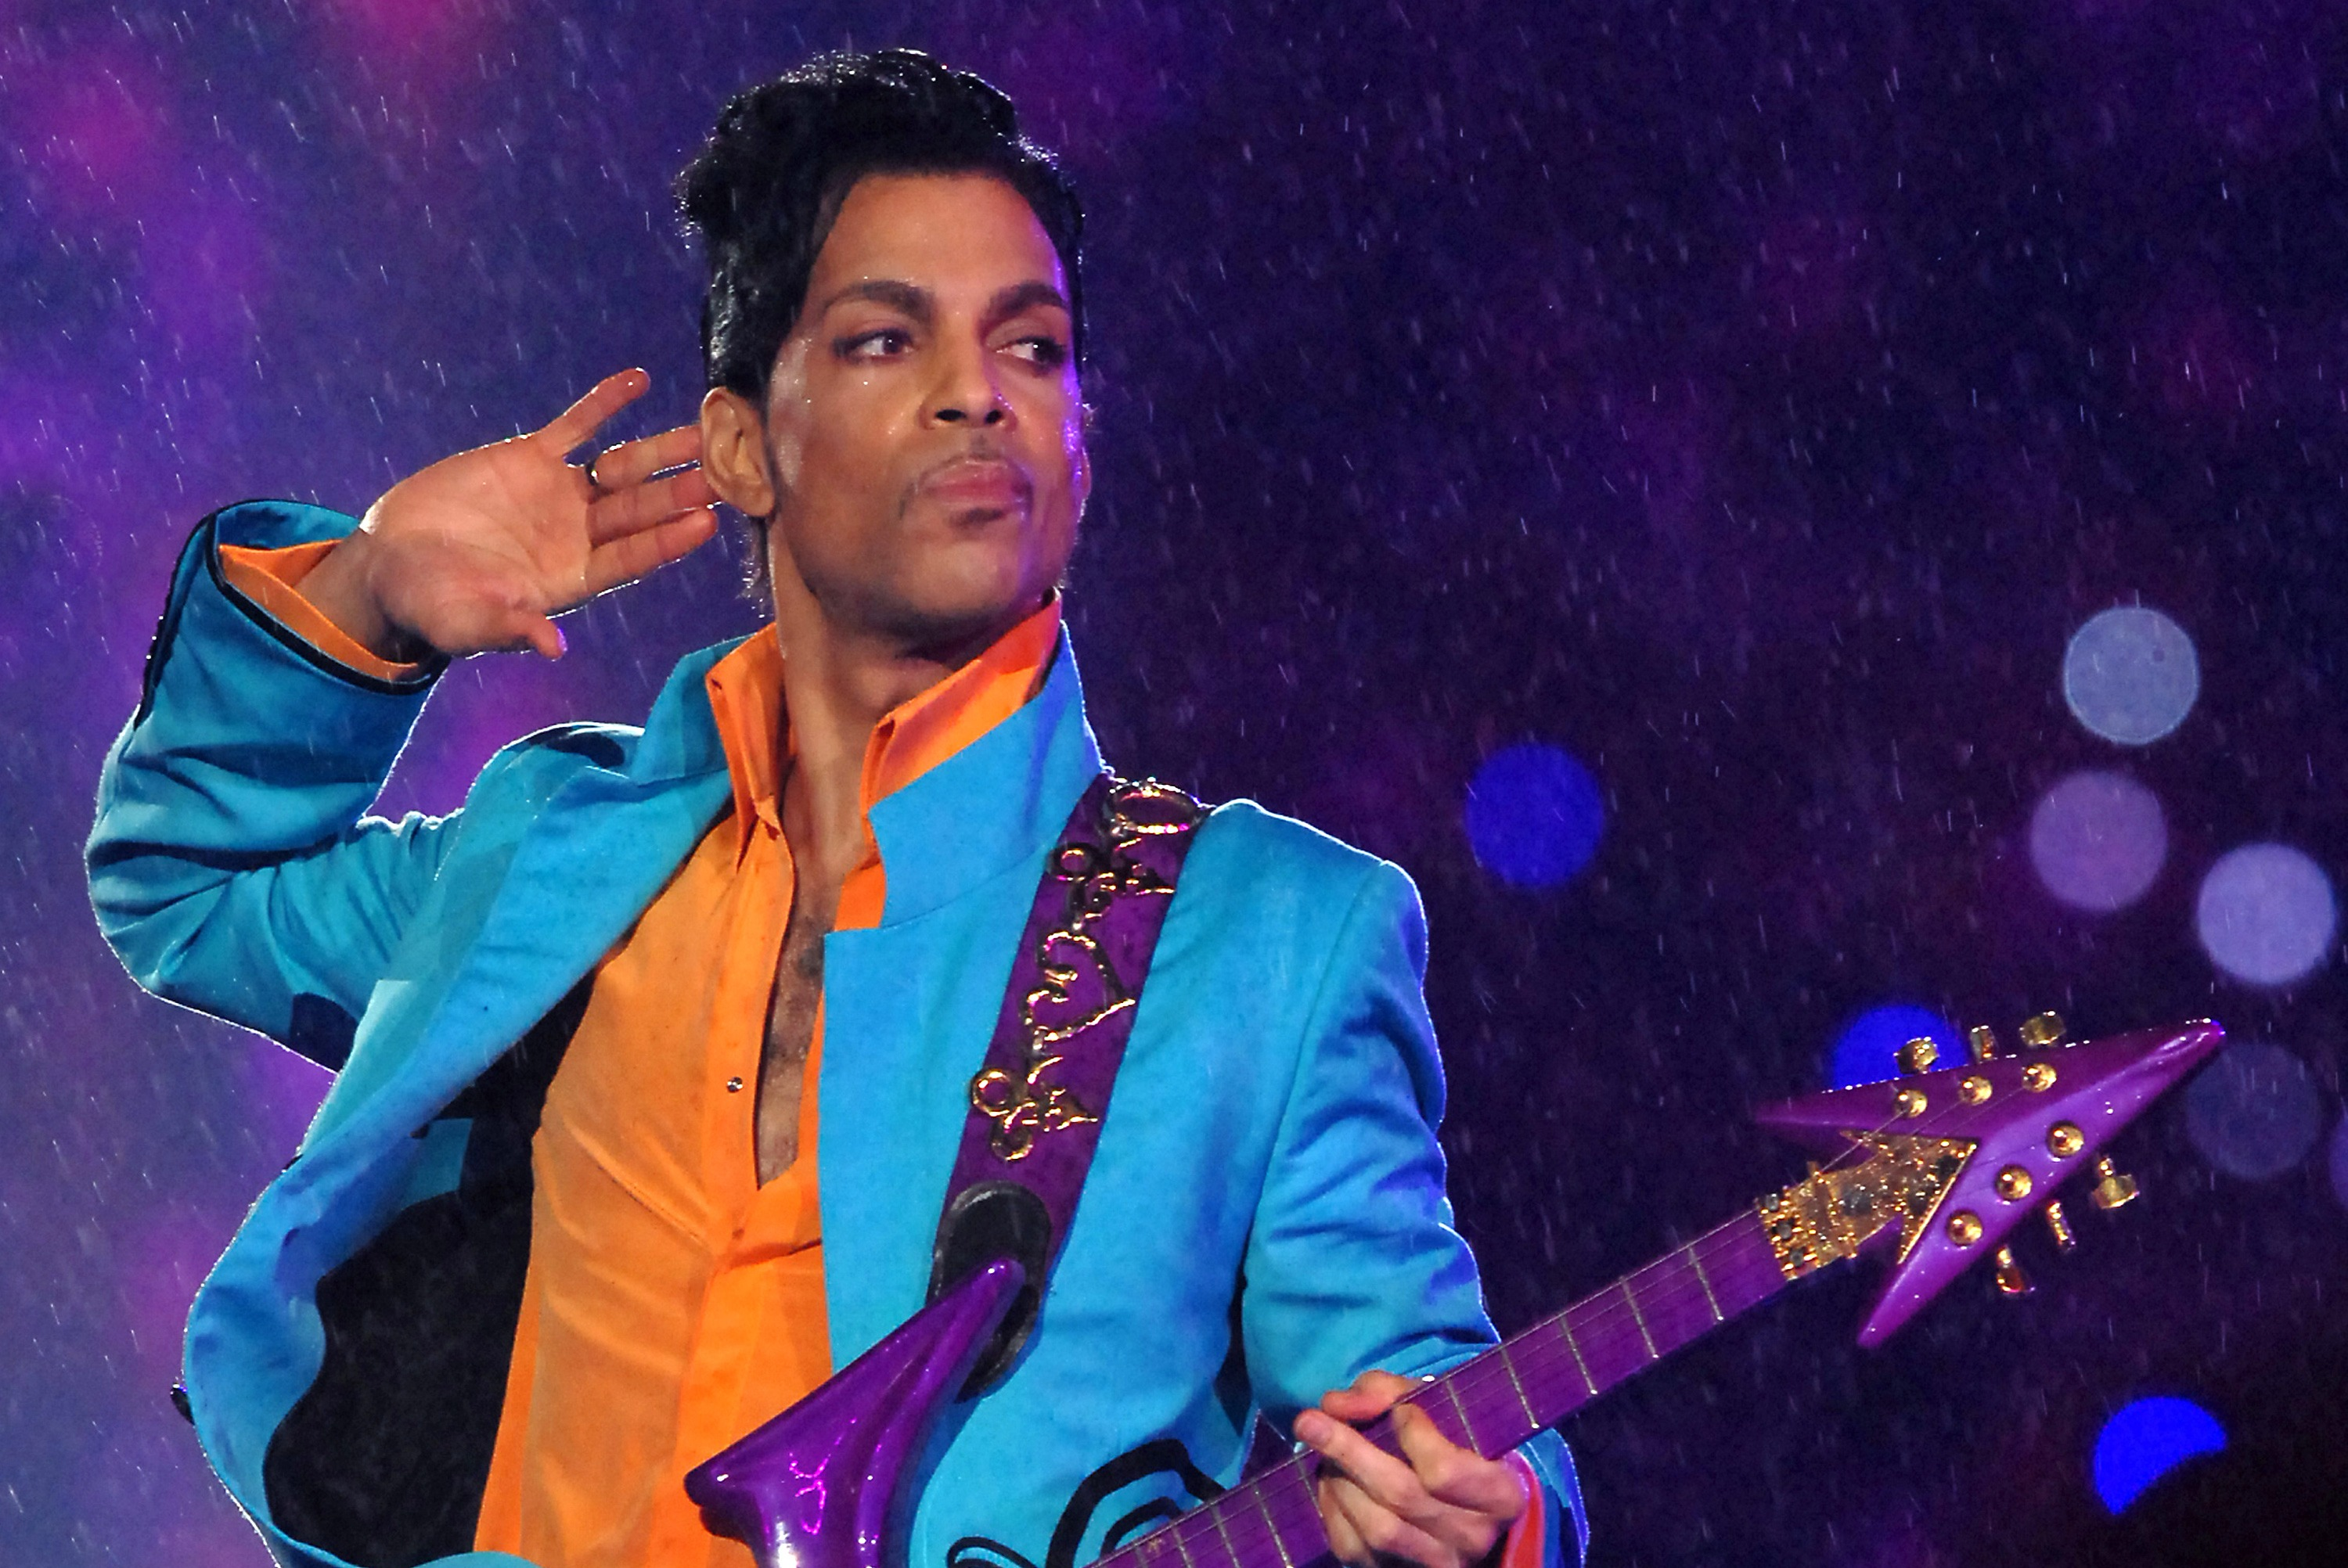 Prince Definitely Wouldn't Want New Album to Be Released, Biographer Says